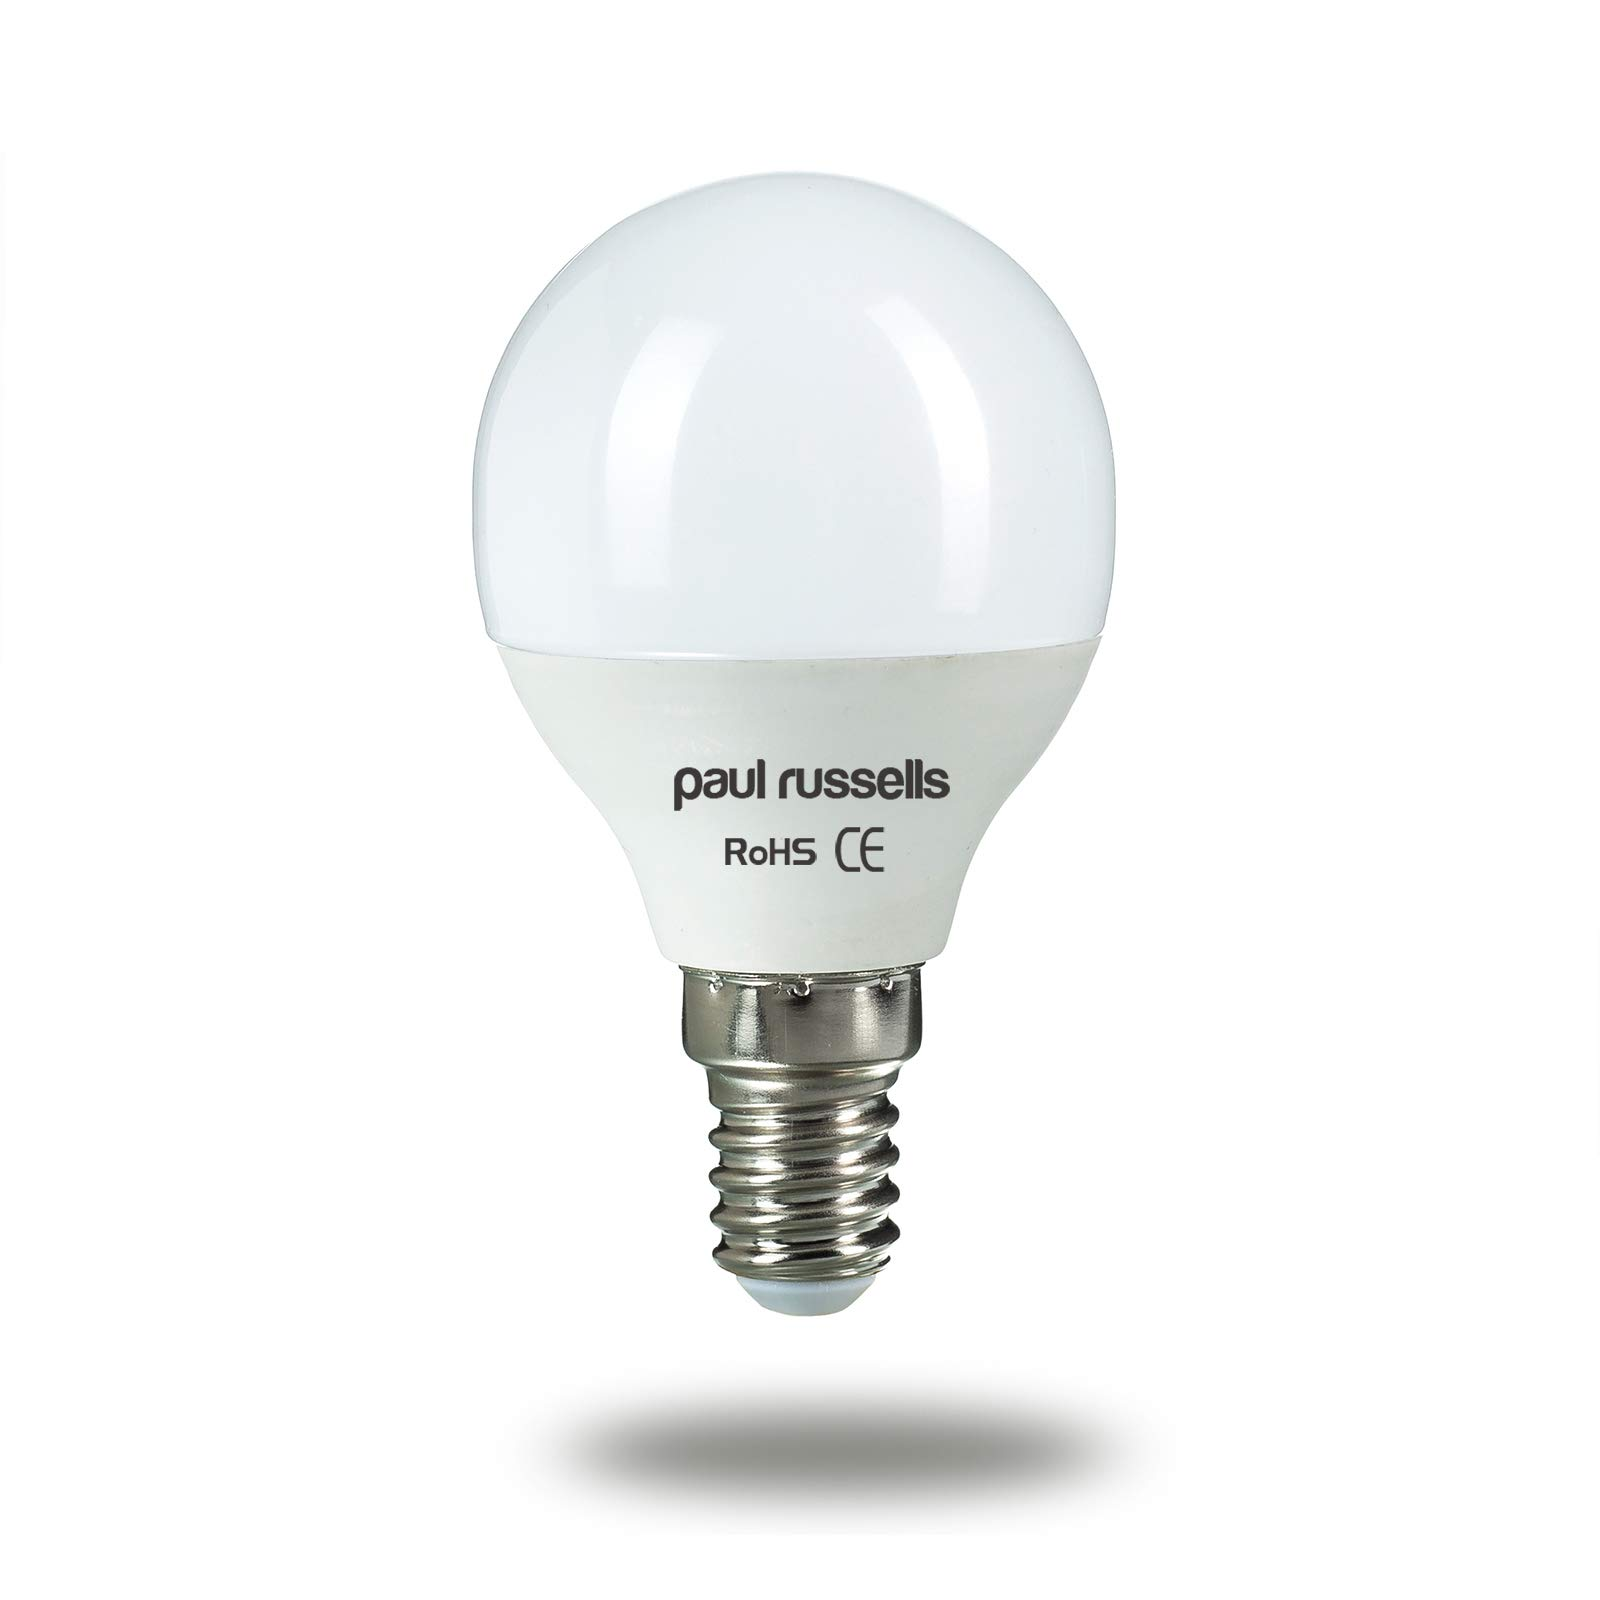 7W Golf Ball LED Light Bulbs SES E14 Small Edison Screw Paul Russells Bright 7W=60W G45 Small Globe/Round 270 Beam Lamp 2700K Warm White 60W Incandescent Replacement